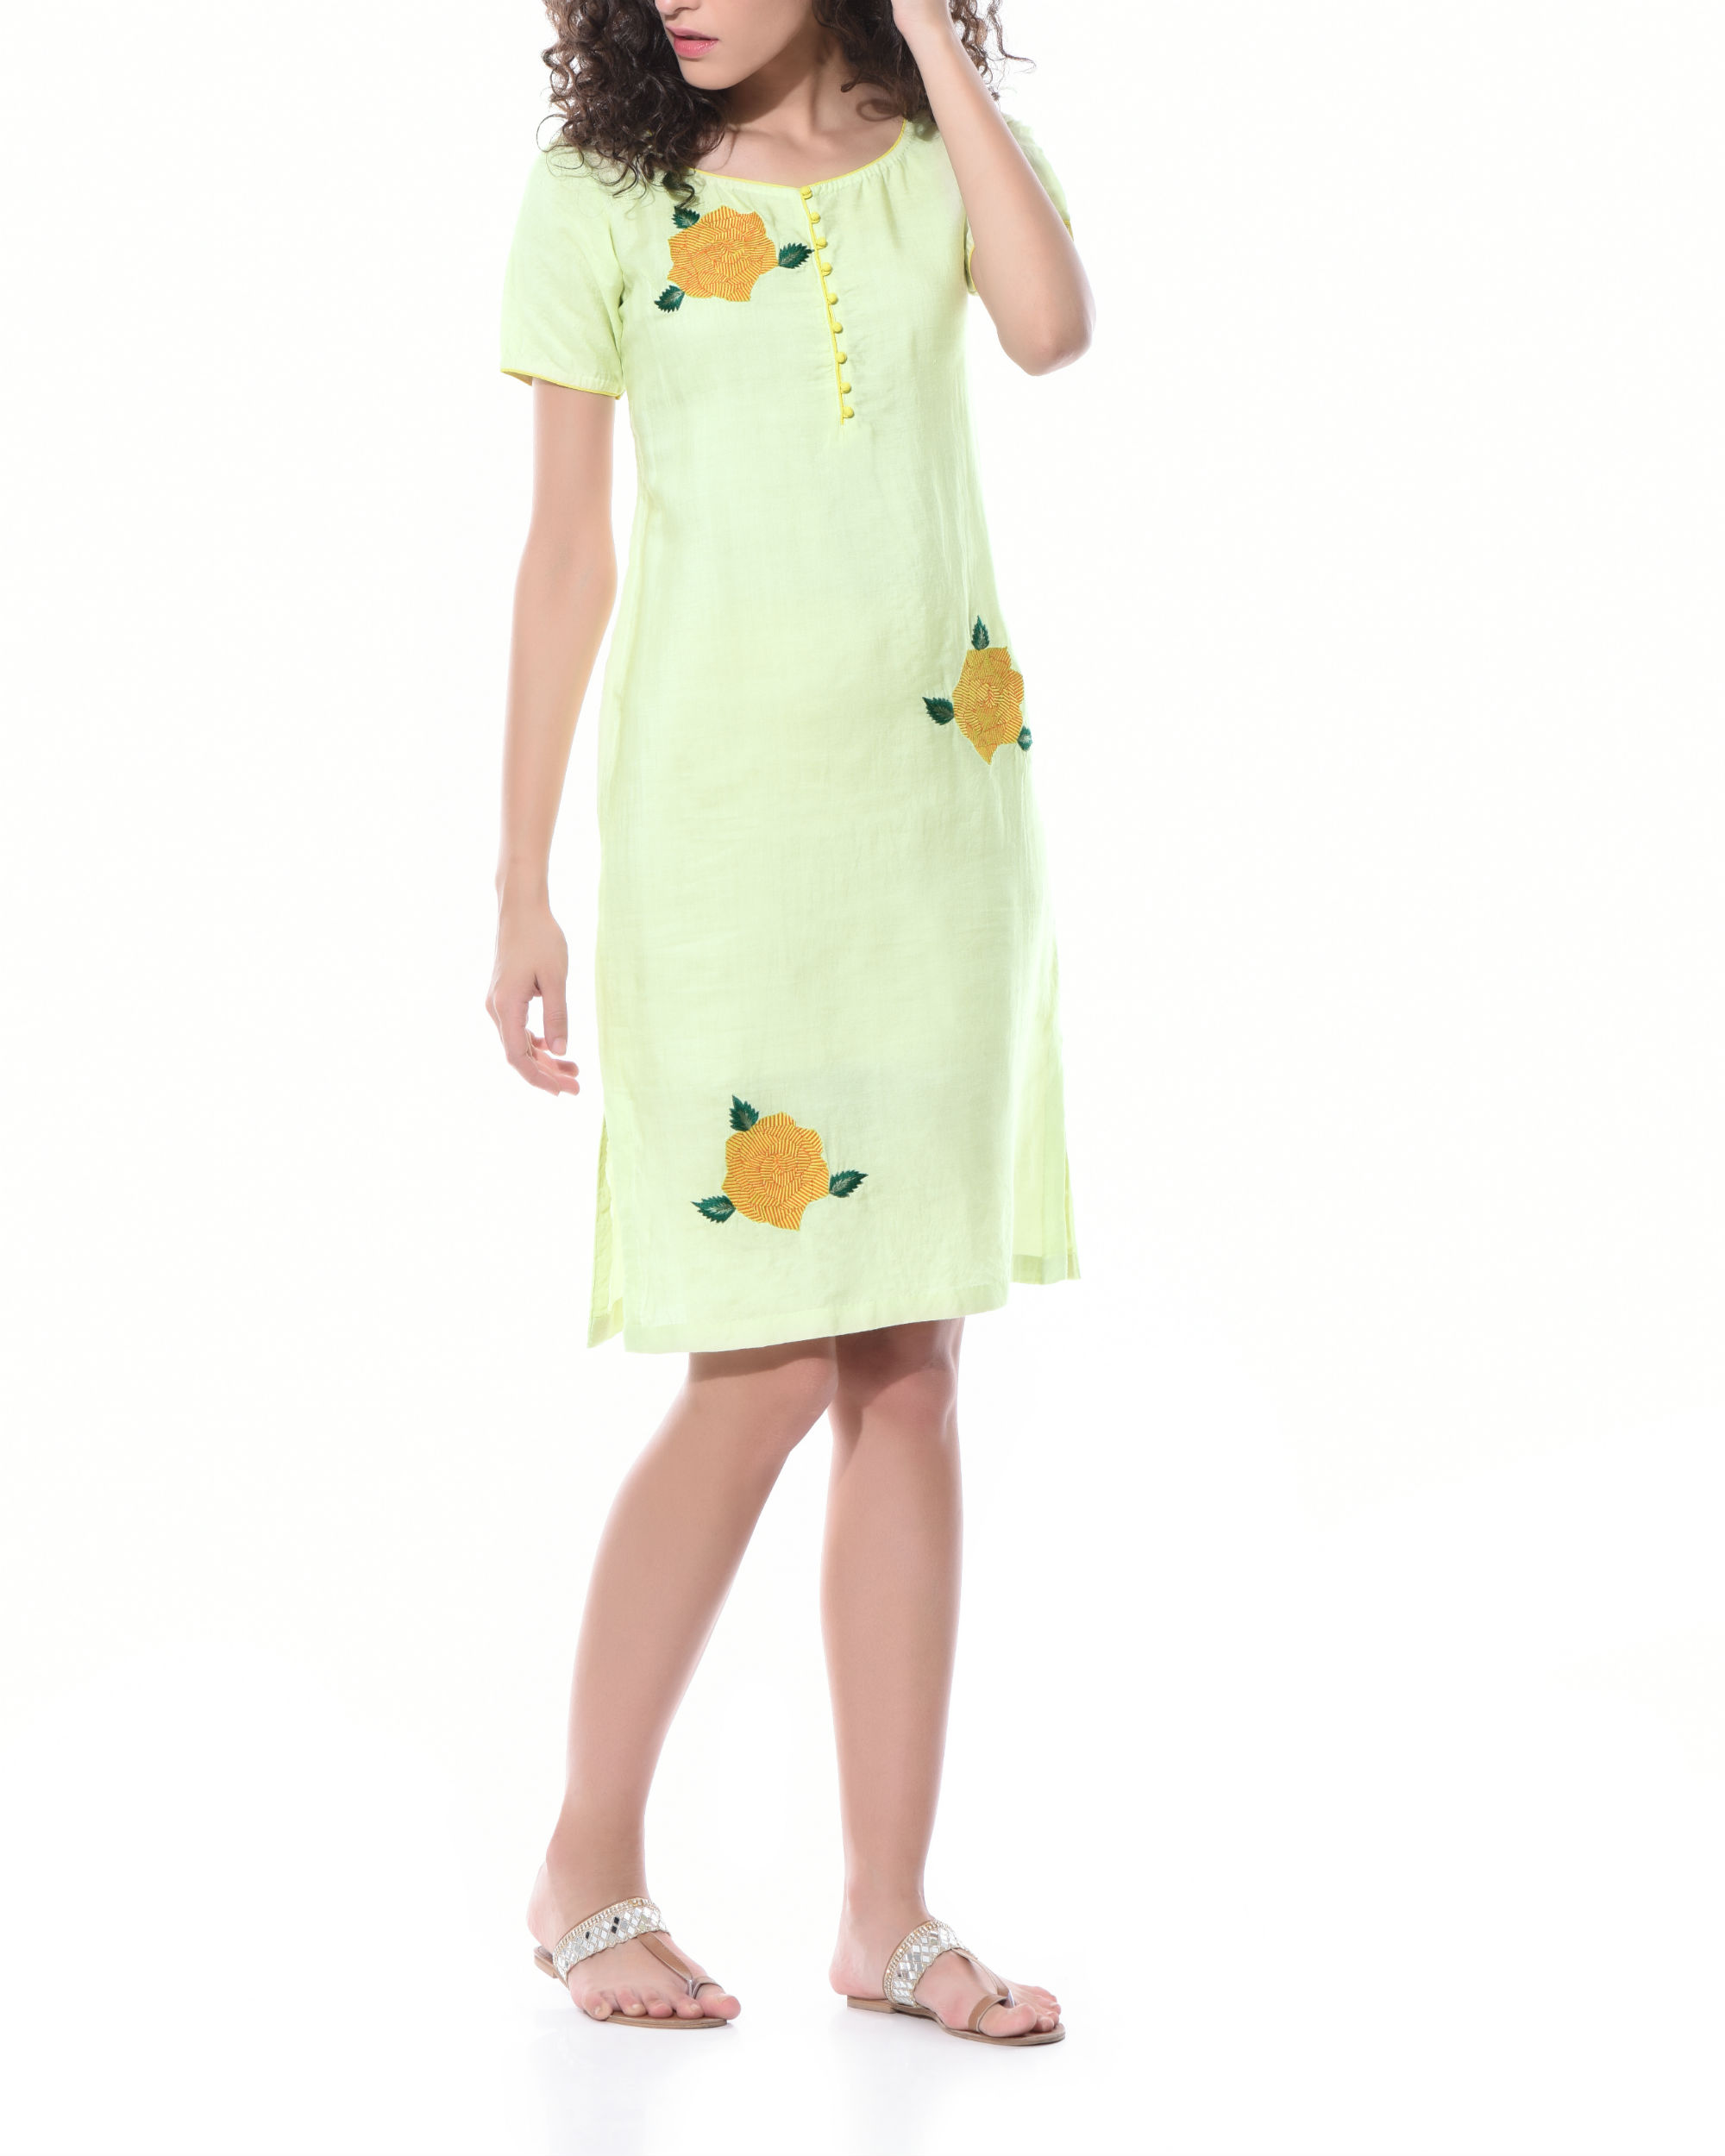 Lemon yellow shift dress